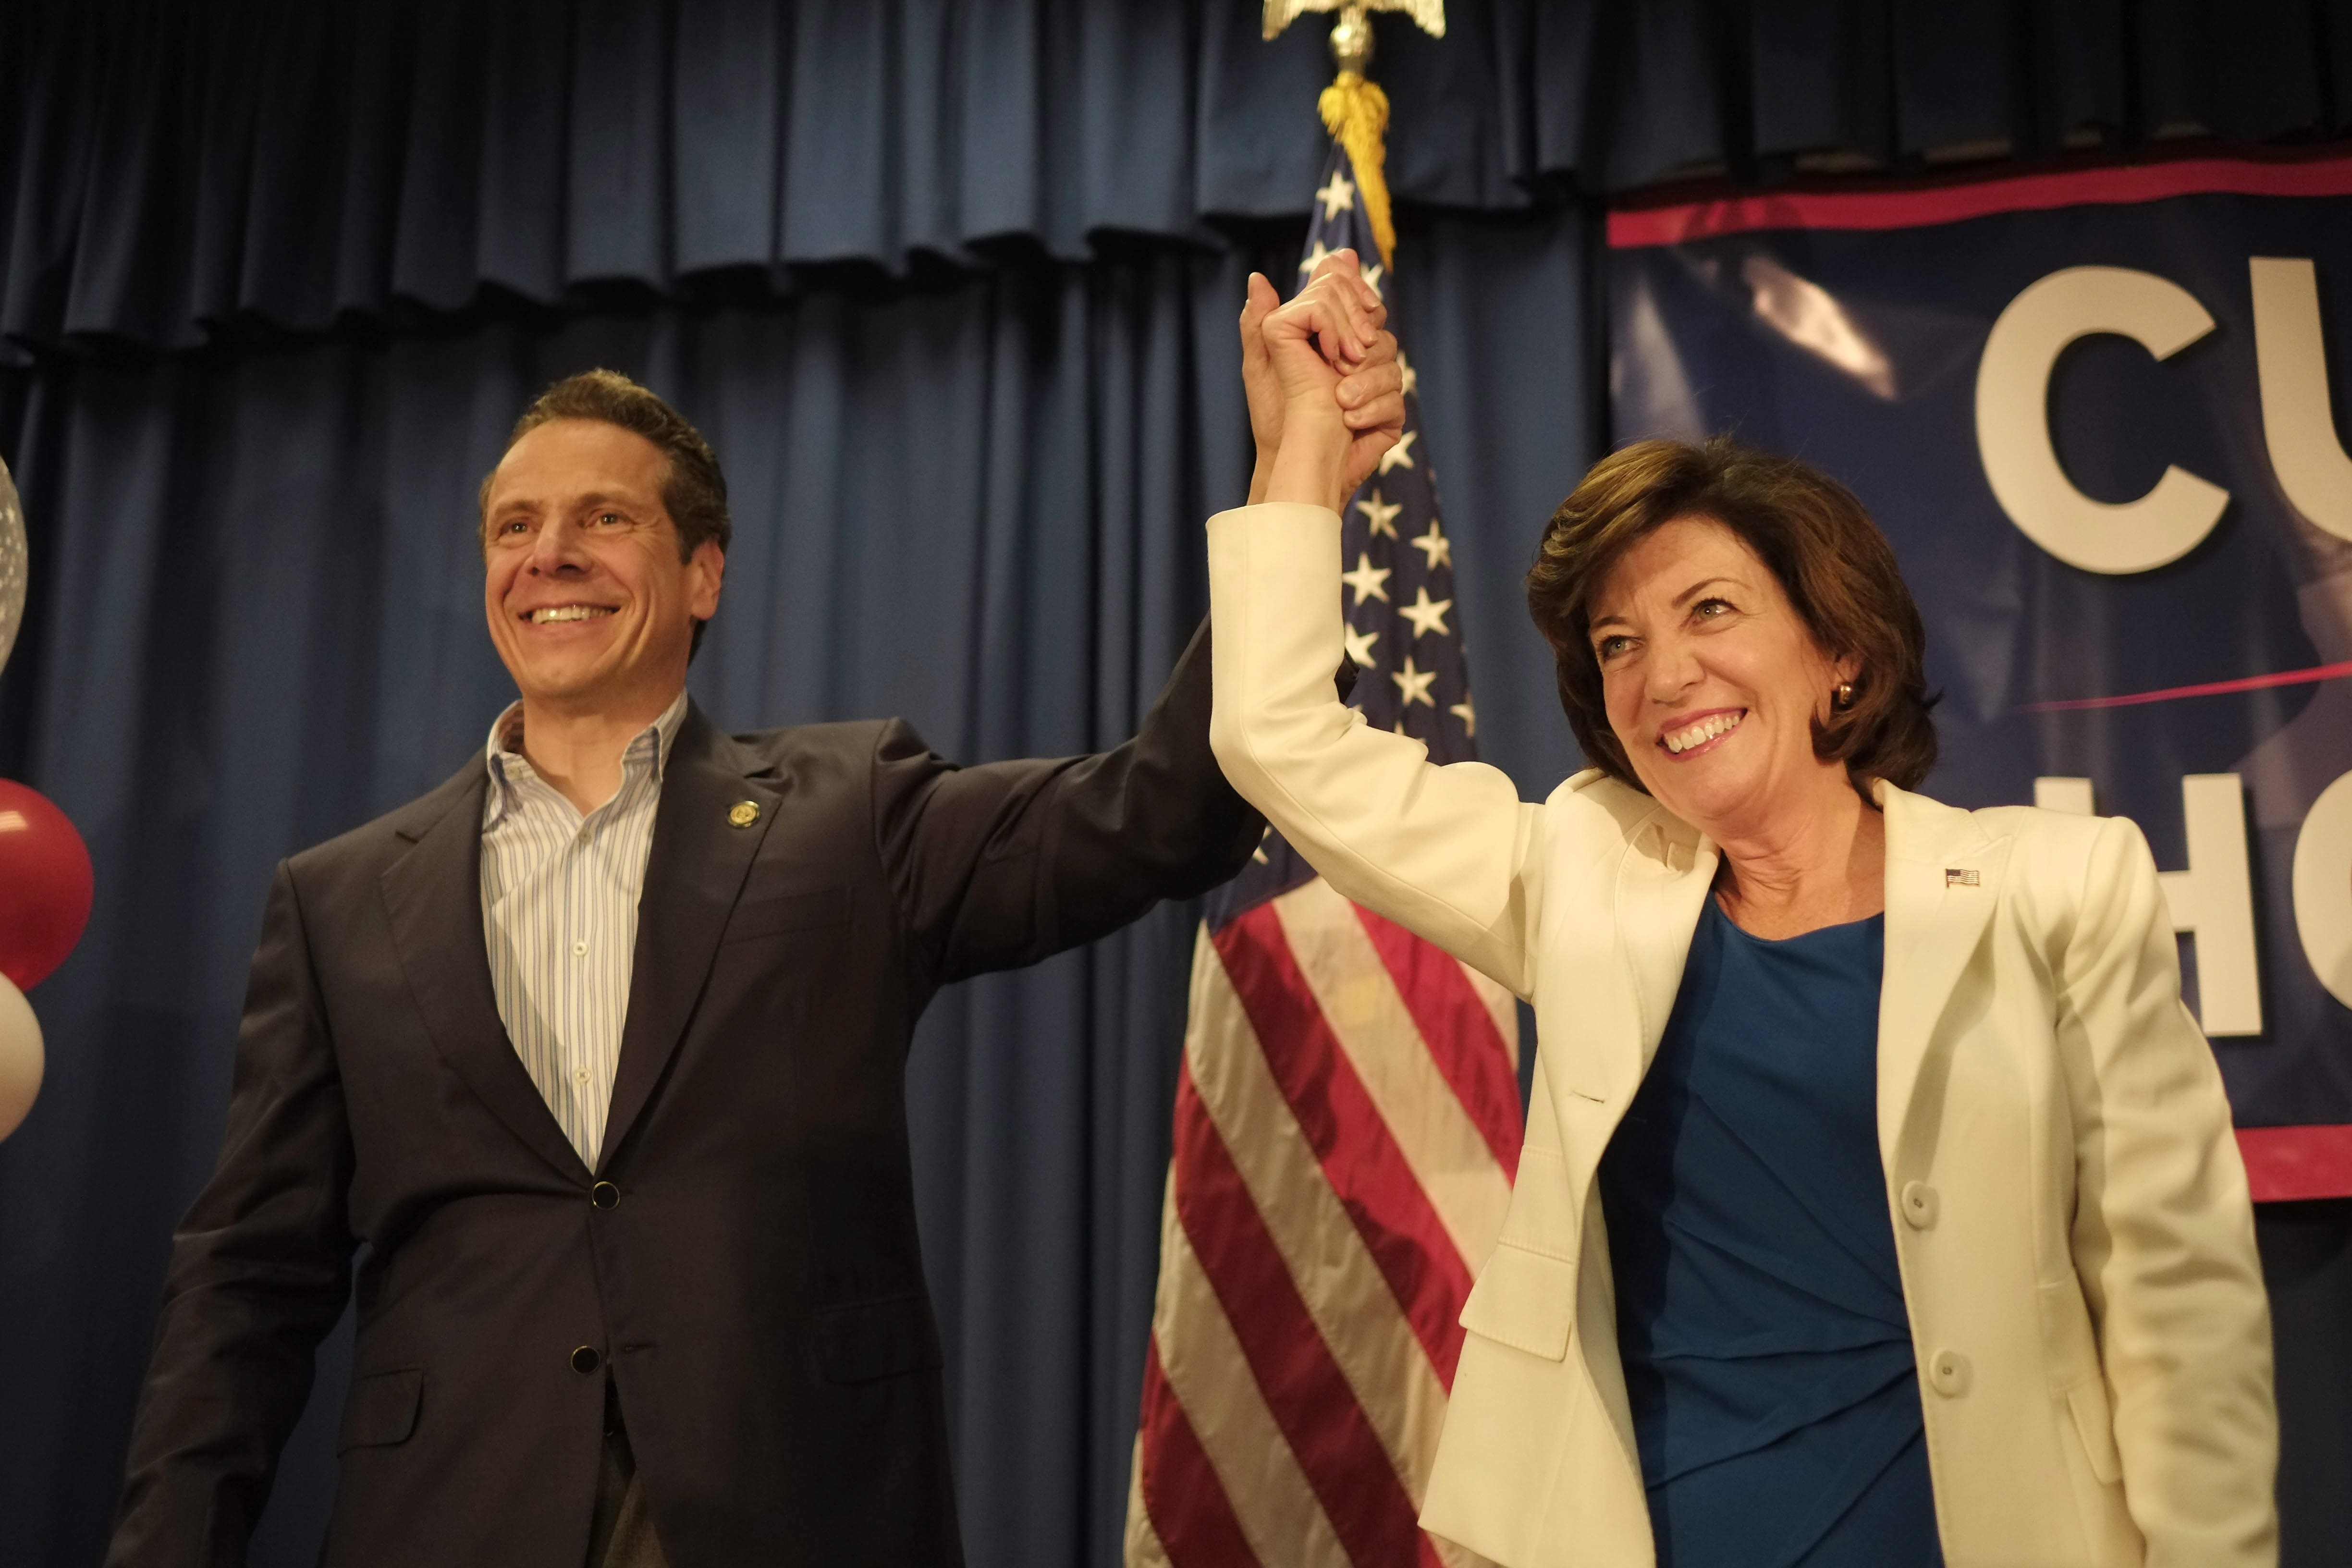 Gov. Andrew Cuomo and running mate Kathy Hochul take the stage together during an event at the United Auto Workers hall in Amherst, Friday, May 23, 2014. (Derek Gee/Buffalo News)